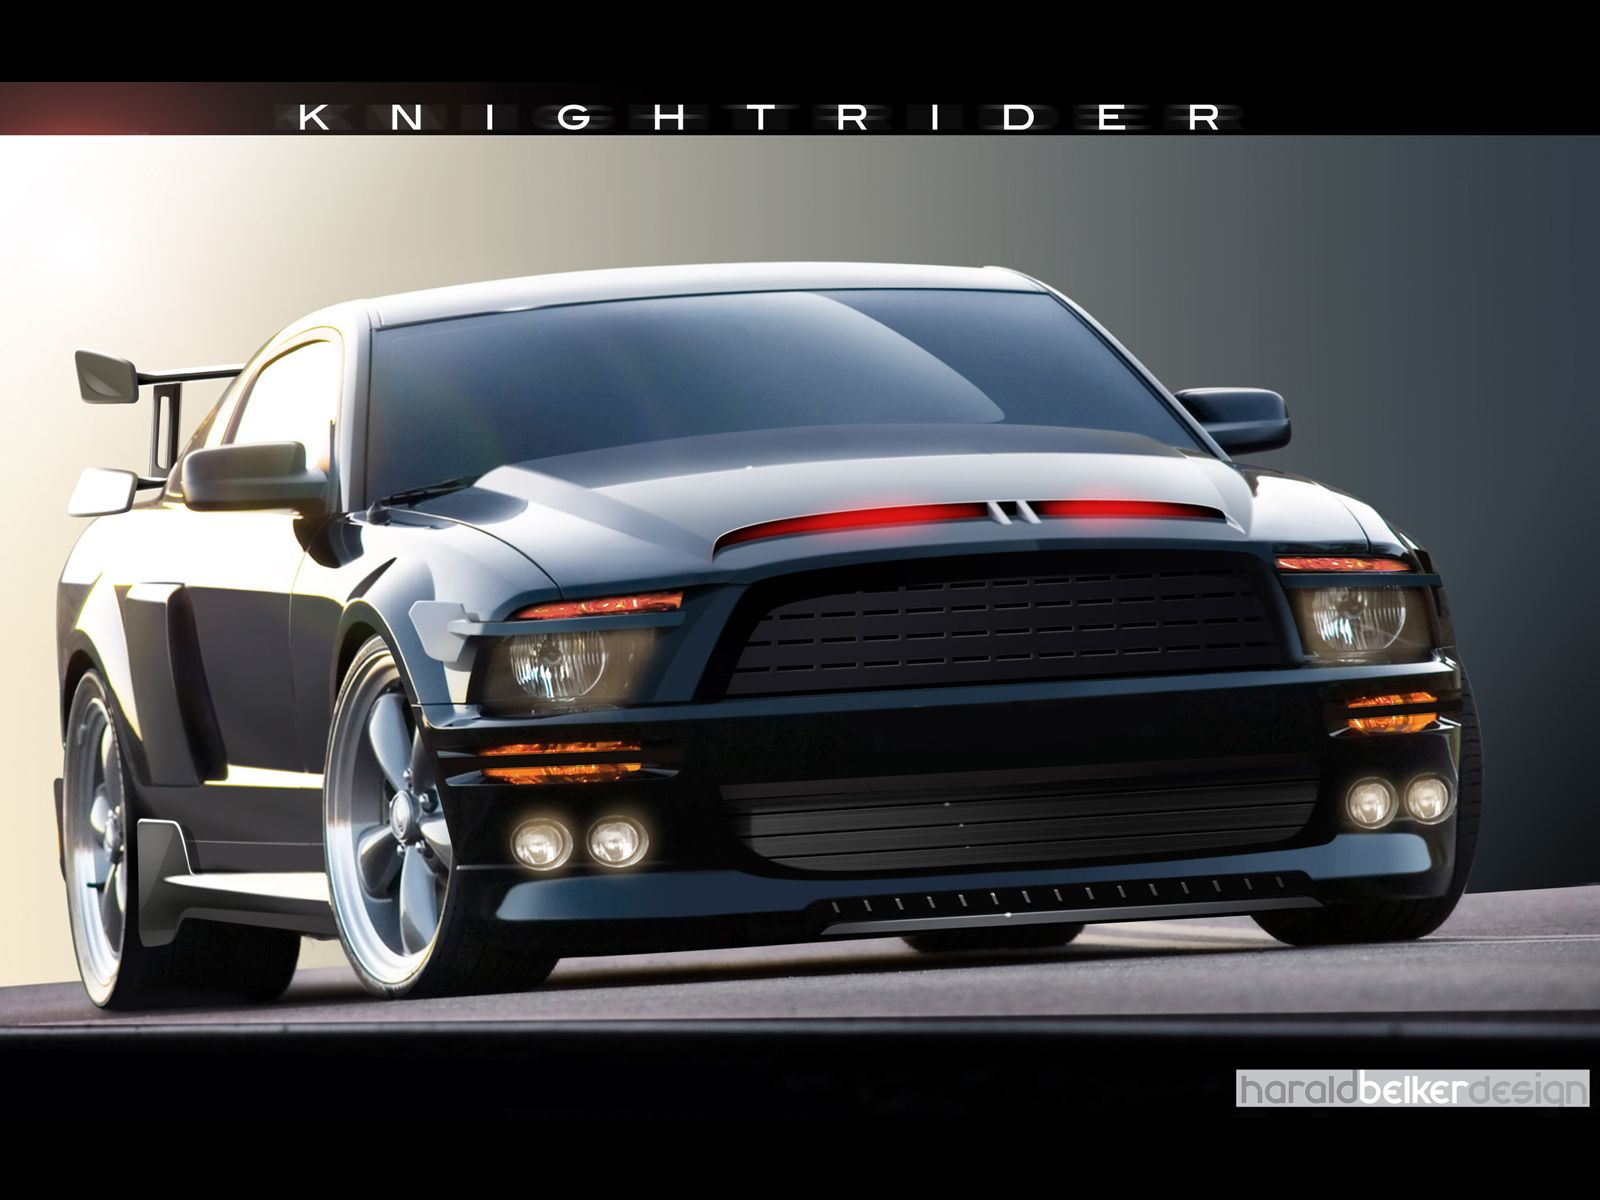 knight rider shelby mustang 500 gtr 02 Mustang gtr wallpaper